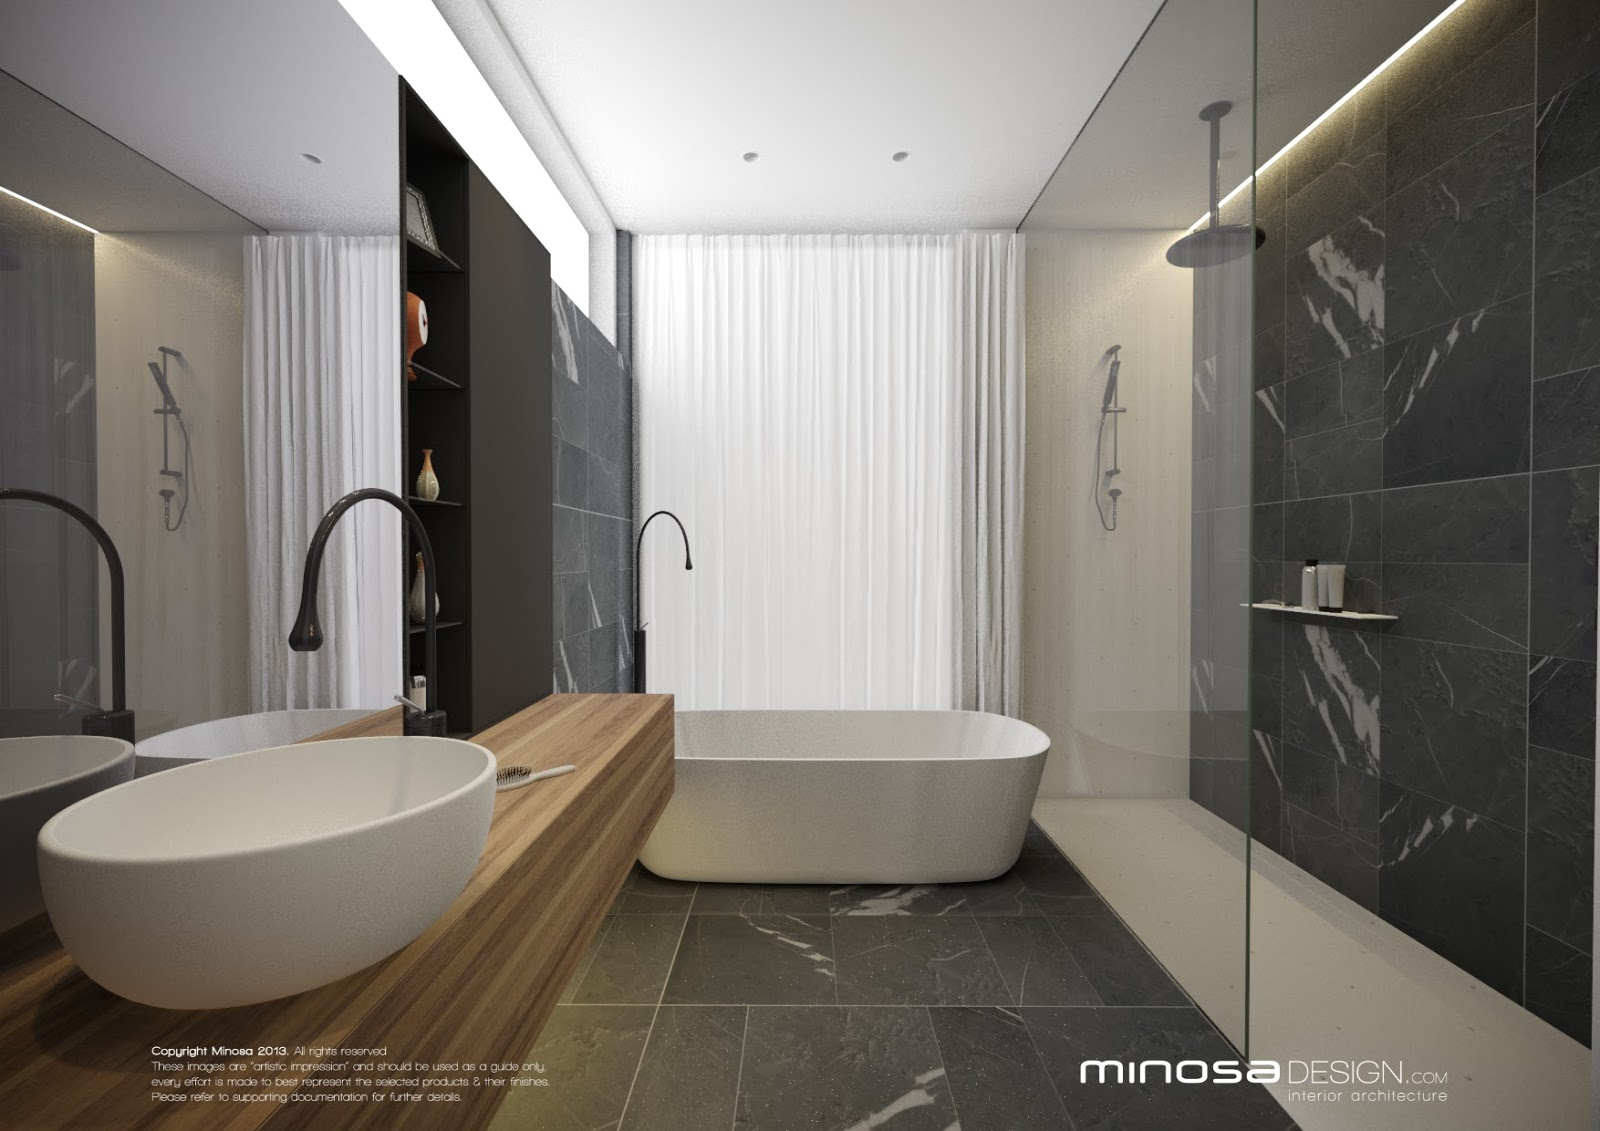 Minosa modern bathroom design to share Modern design of bathroom